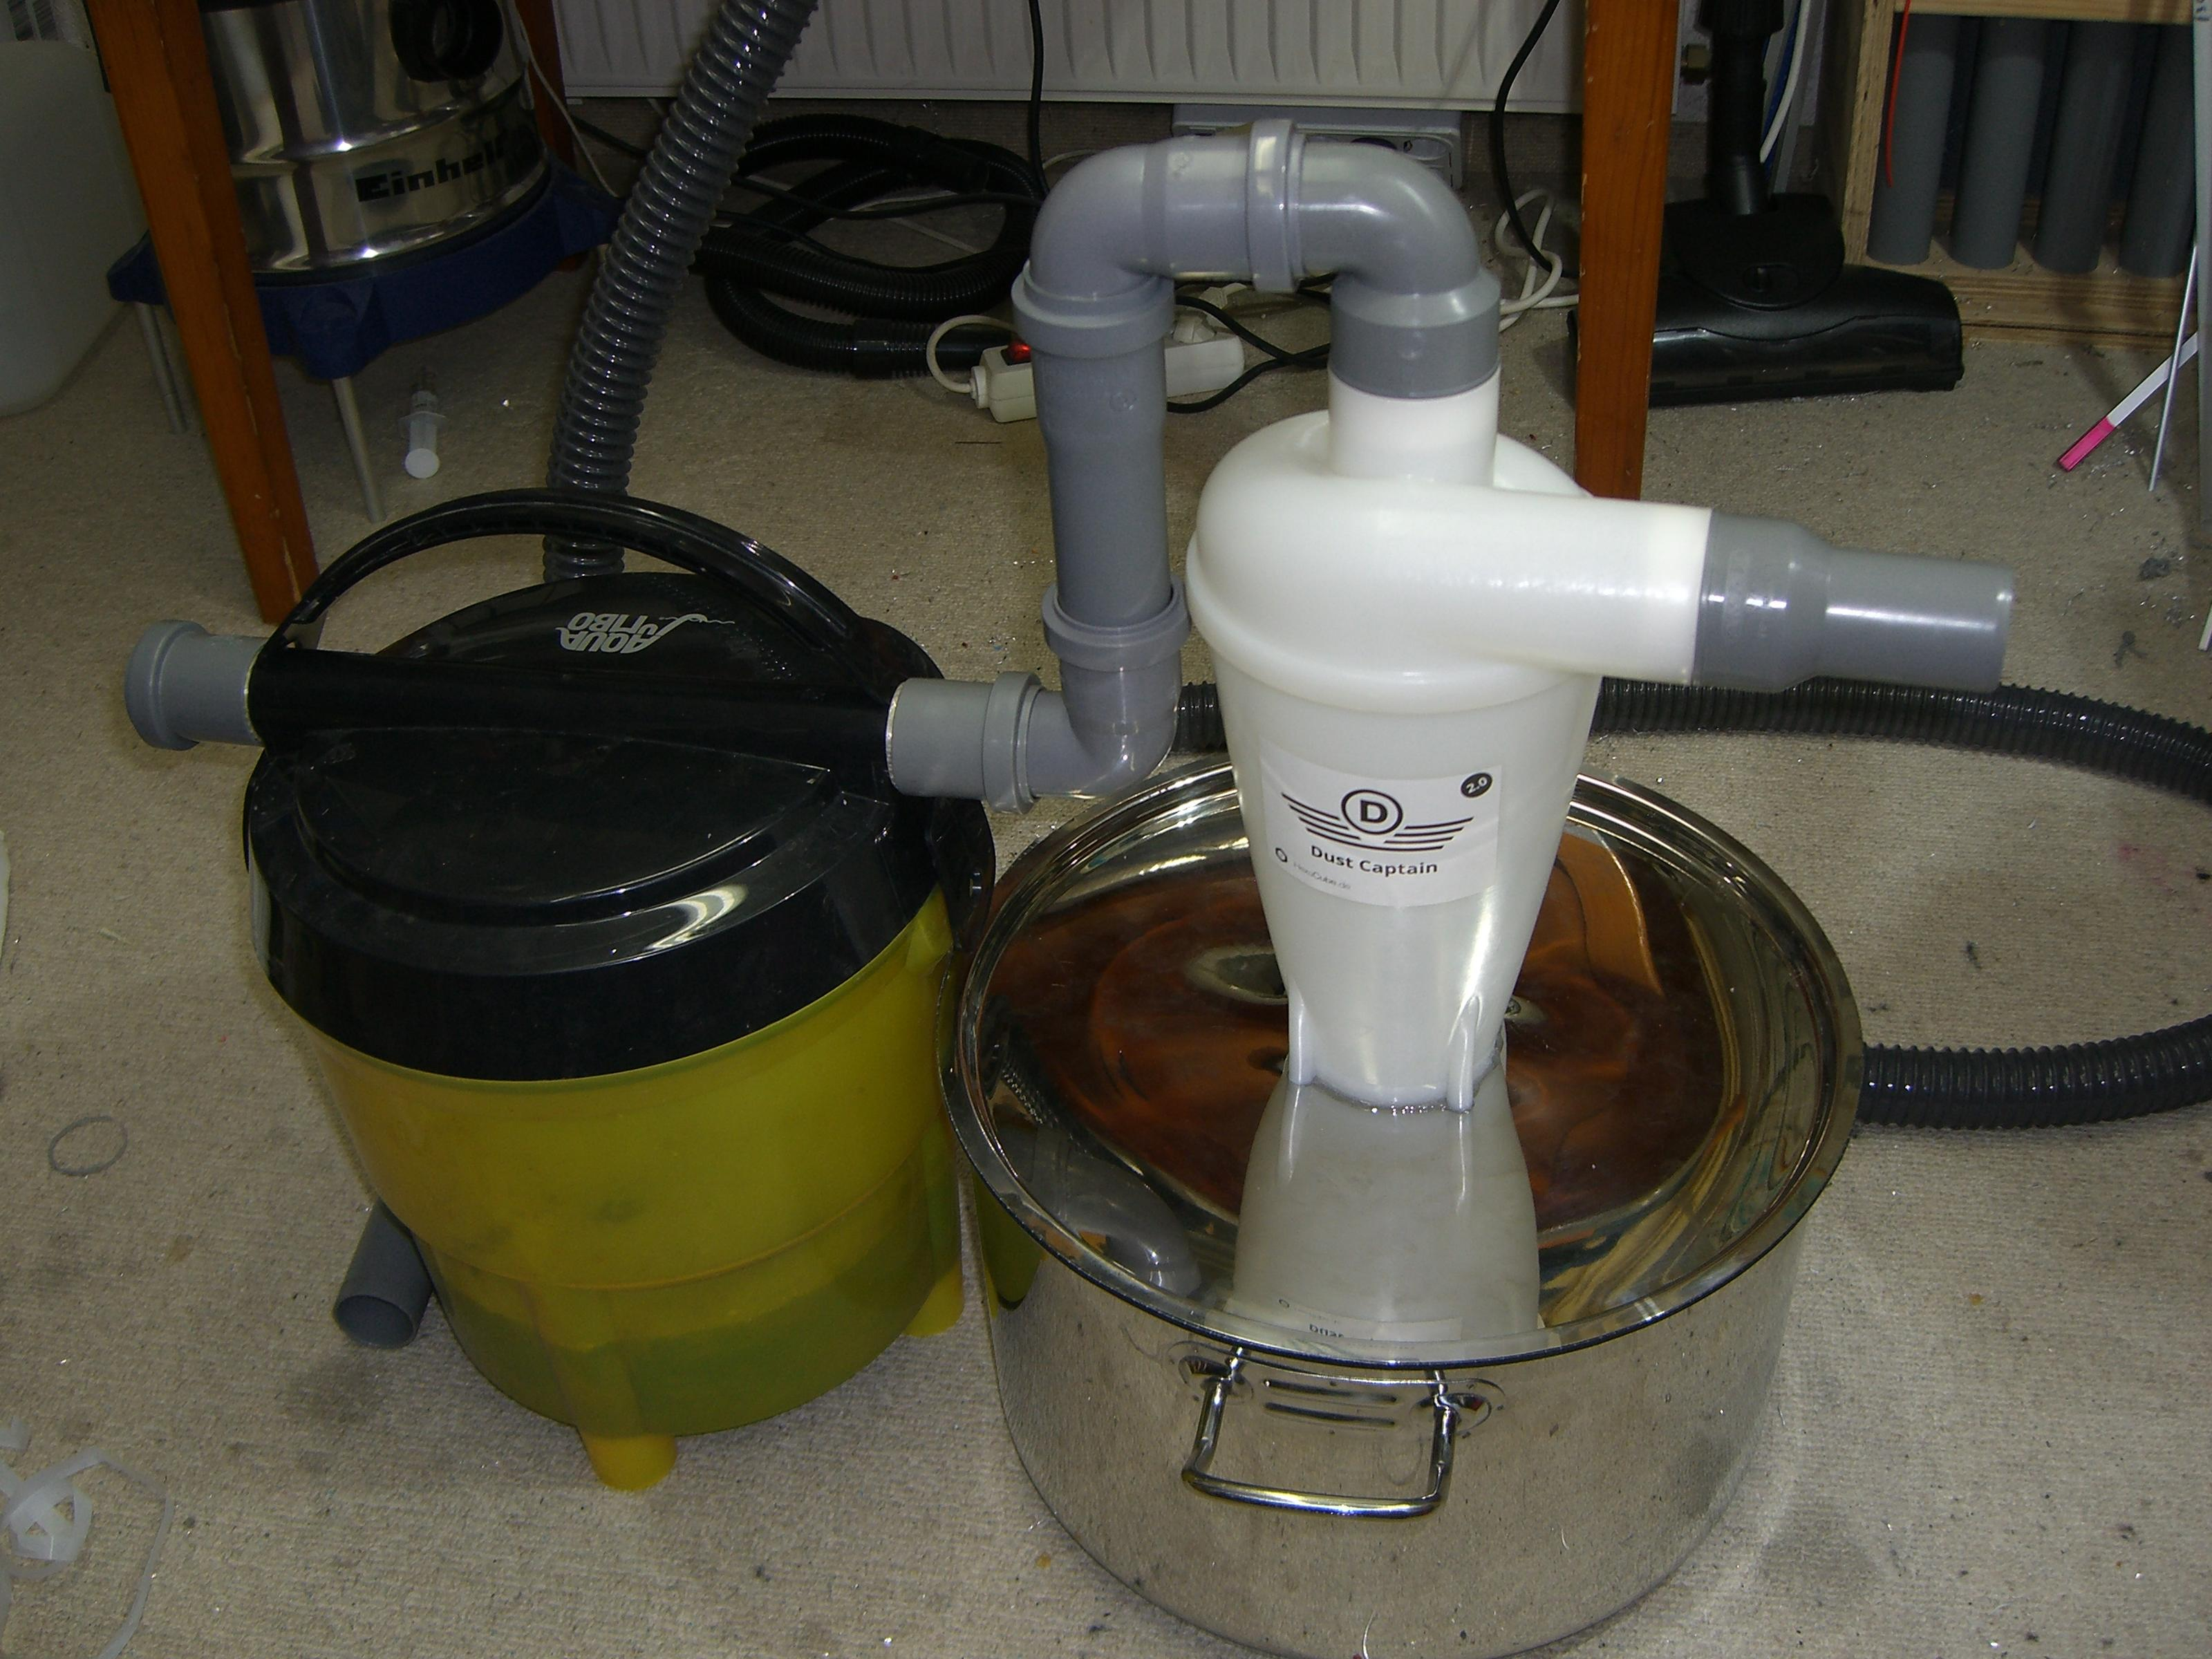 dust captain cyclone separator and diy water prefilter for workshop